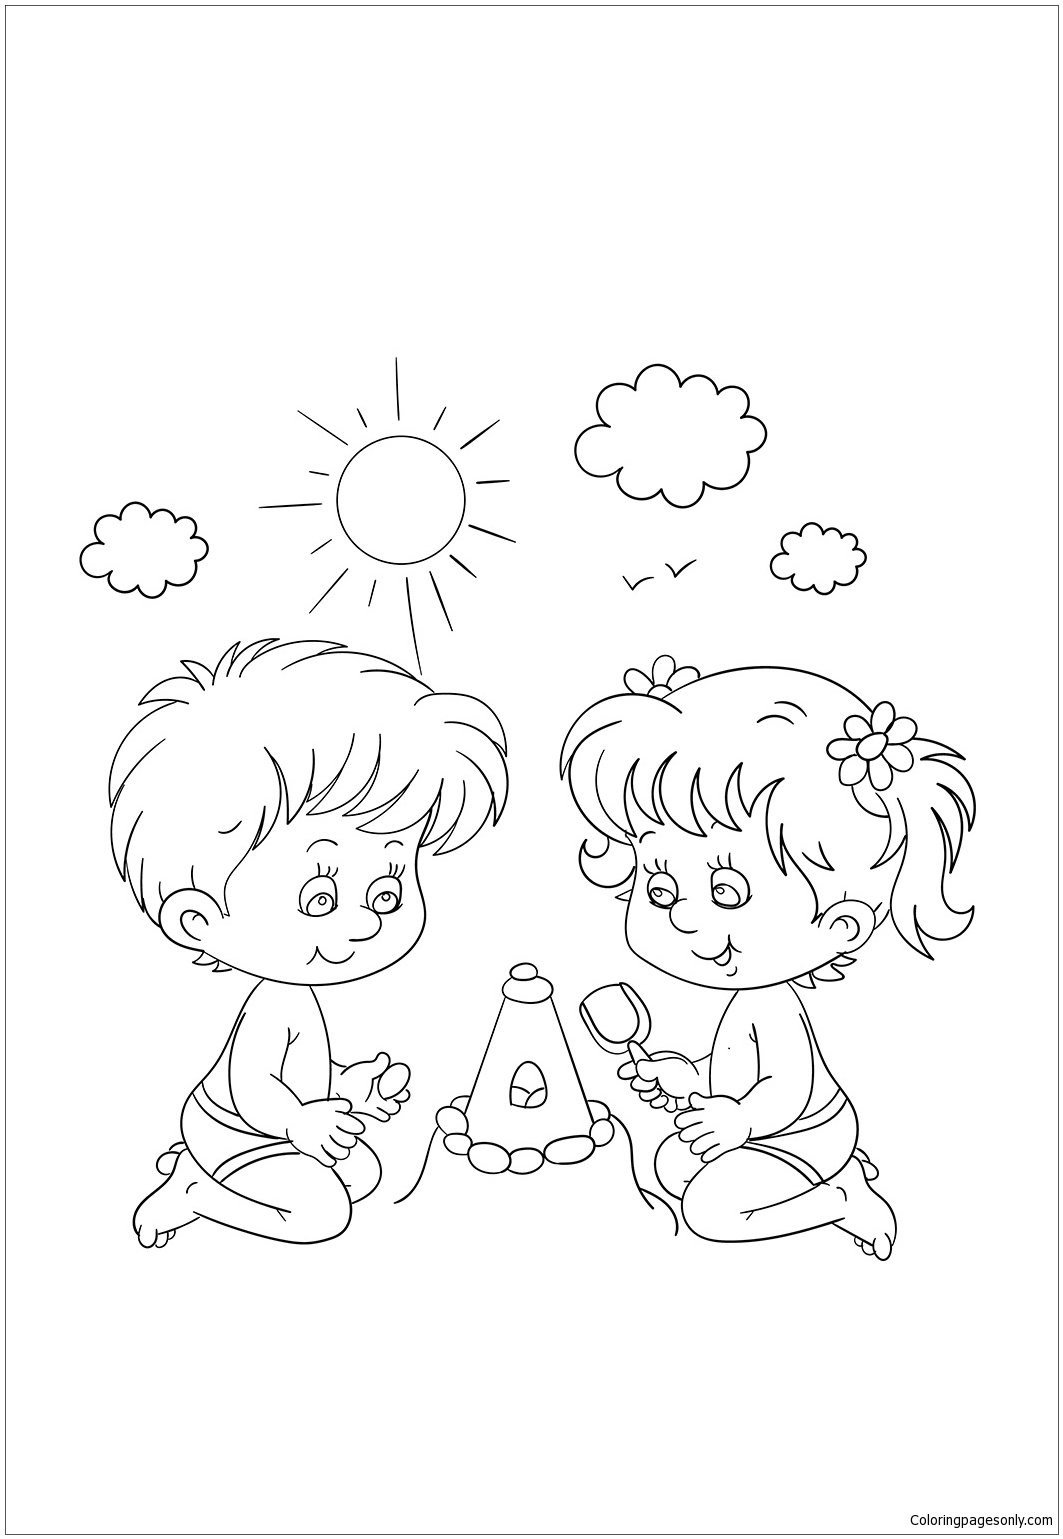 coloring pages little boy and girl | Little Boy And Girl Playing At Coloring Page - Free ...